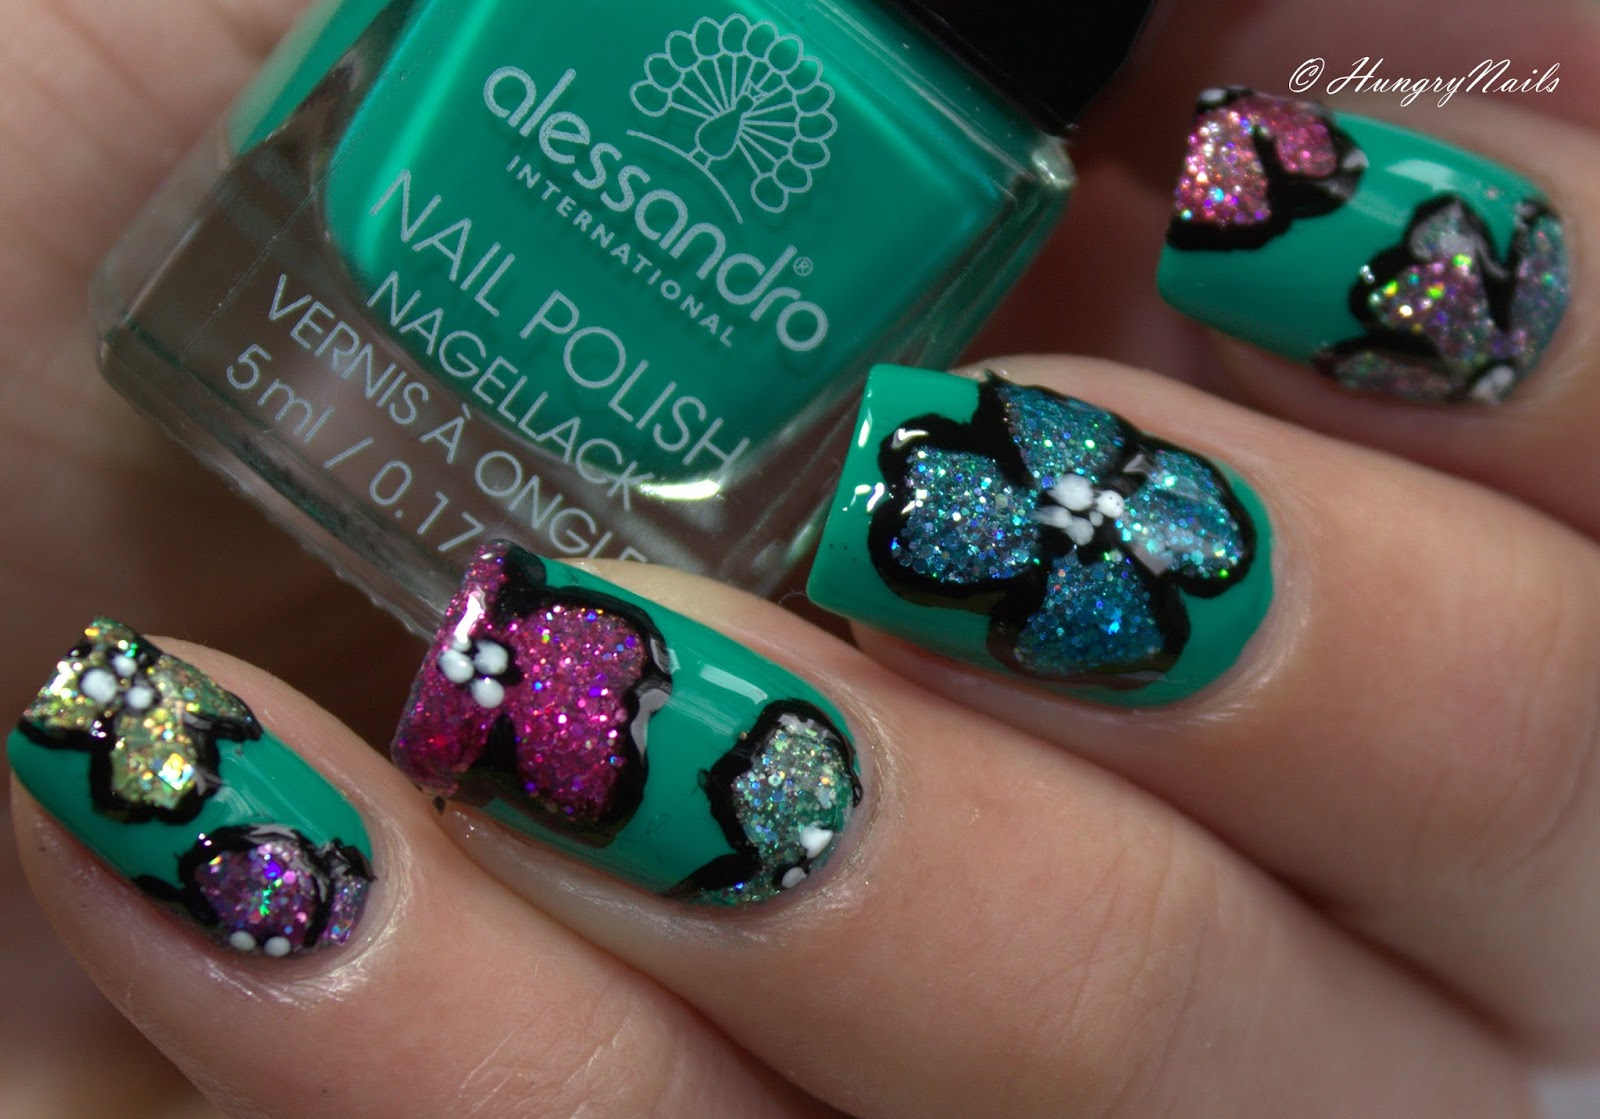 http://hungrynails.blogspot.com/2015/02/flower-glitter-naildesign.html